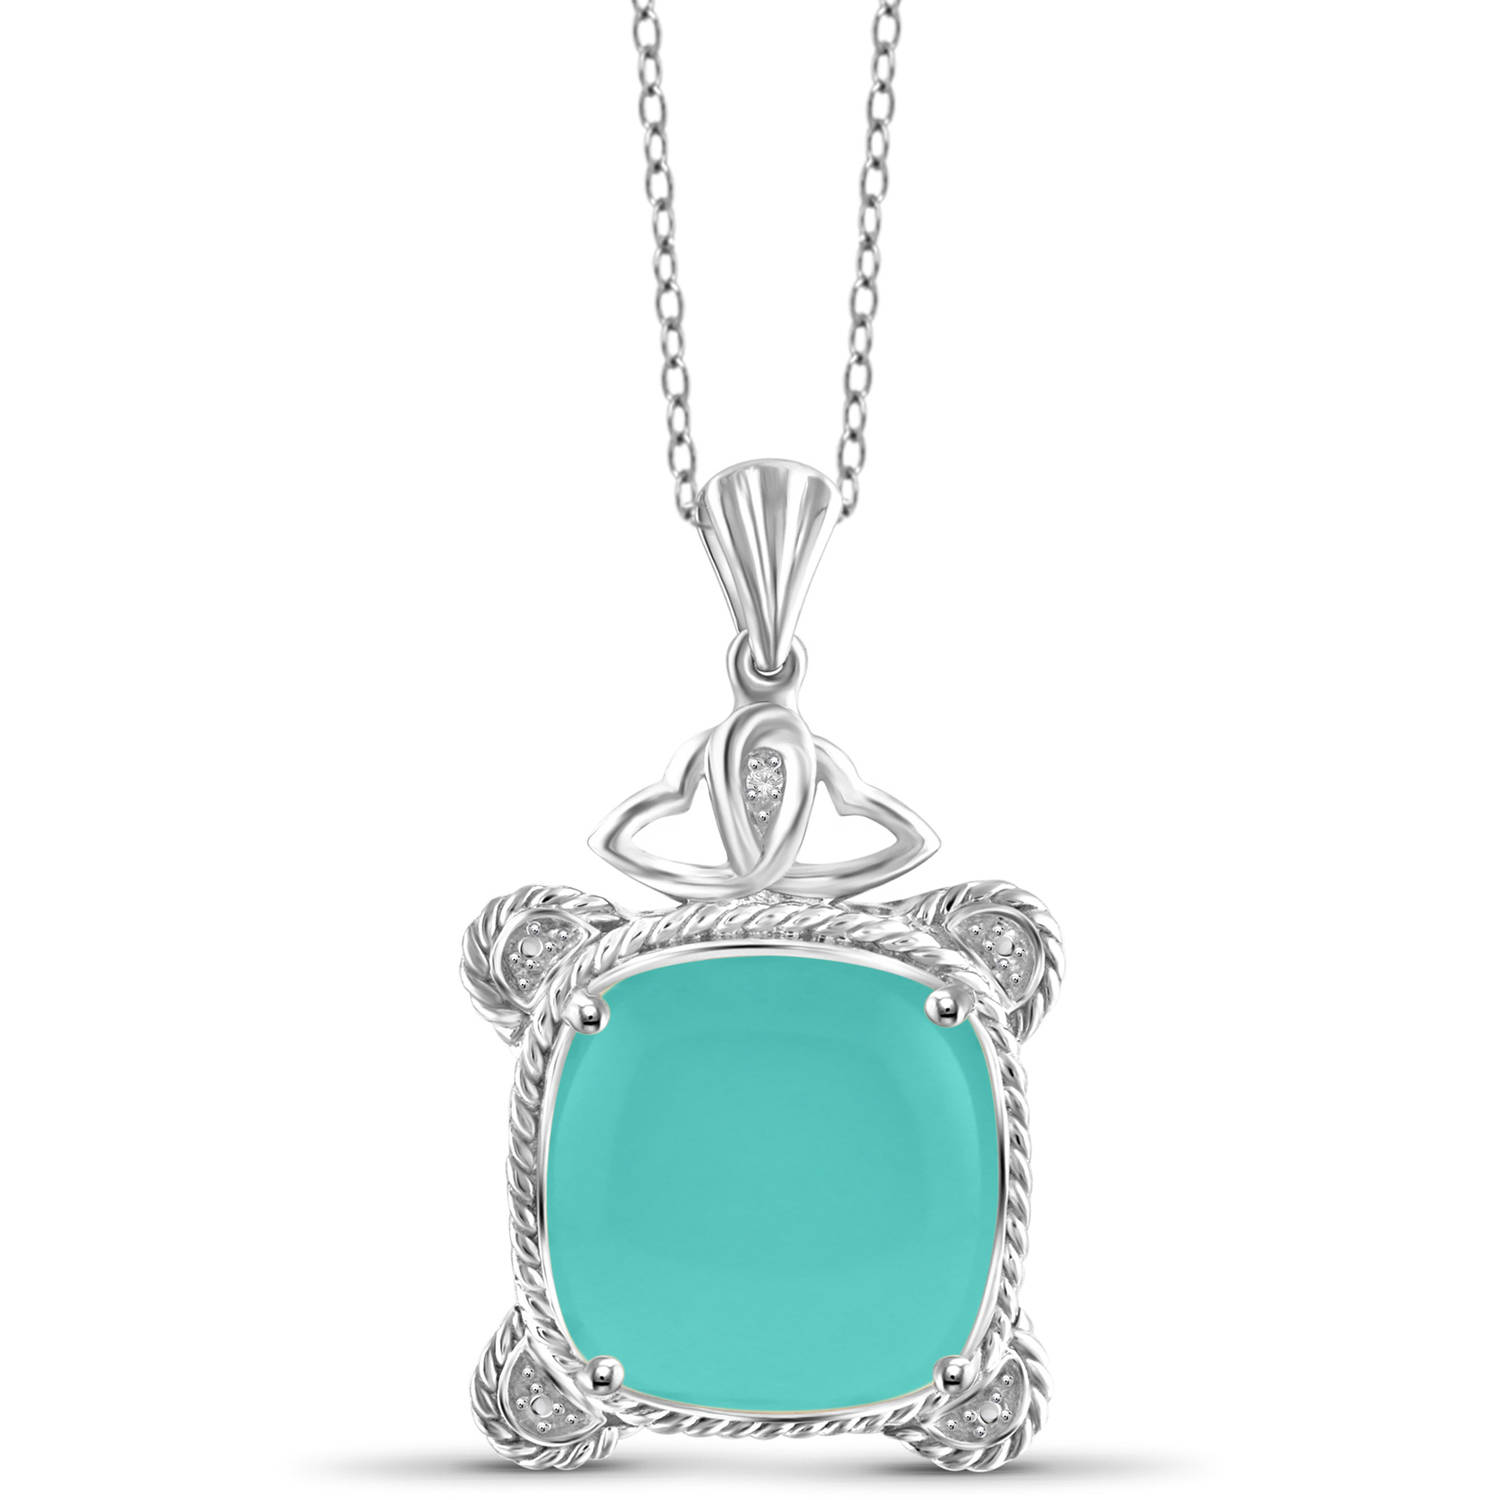 "JewelersClub 10-3 4 Carat T.G.W. Chalcedony and White Diamond Accent Sterling Silver Fashion Pendant, 18"" by JewelersClub"